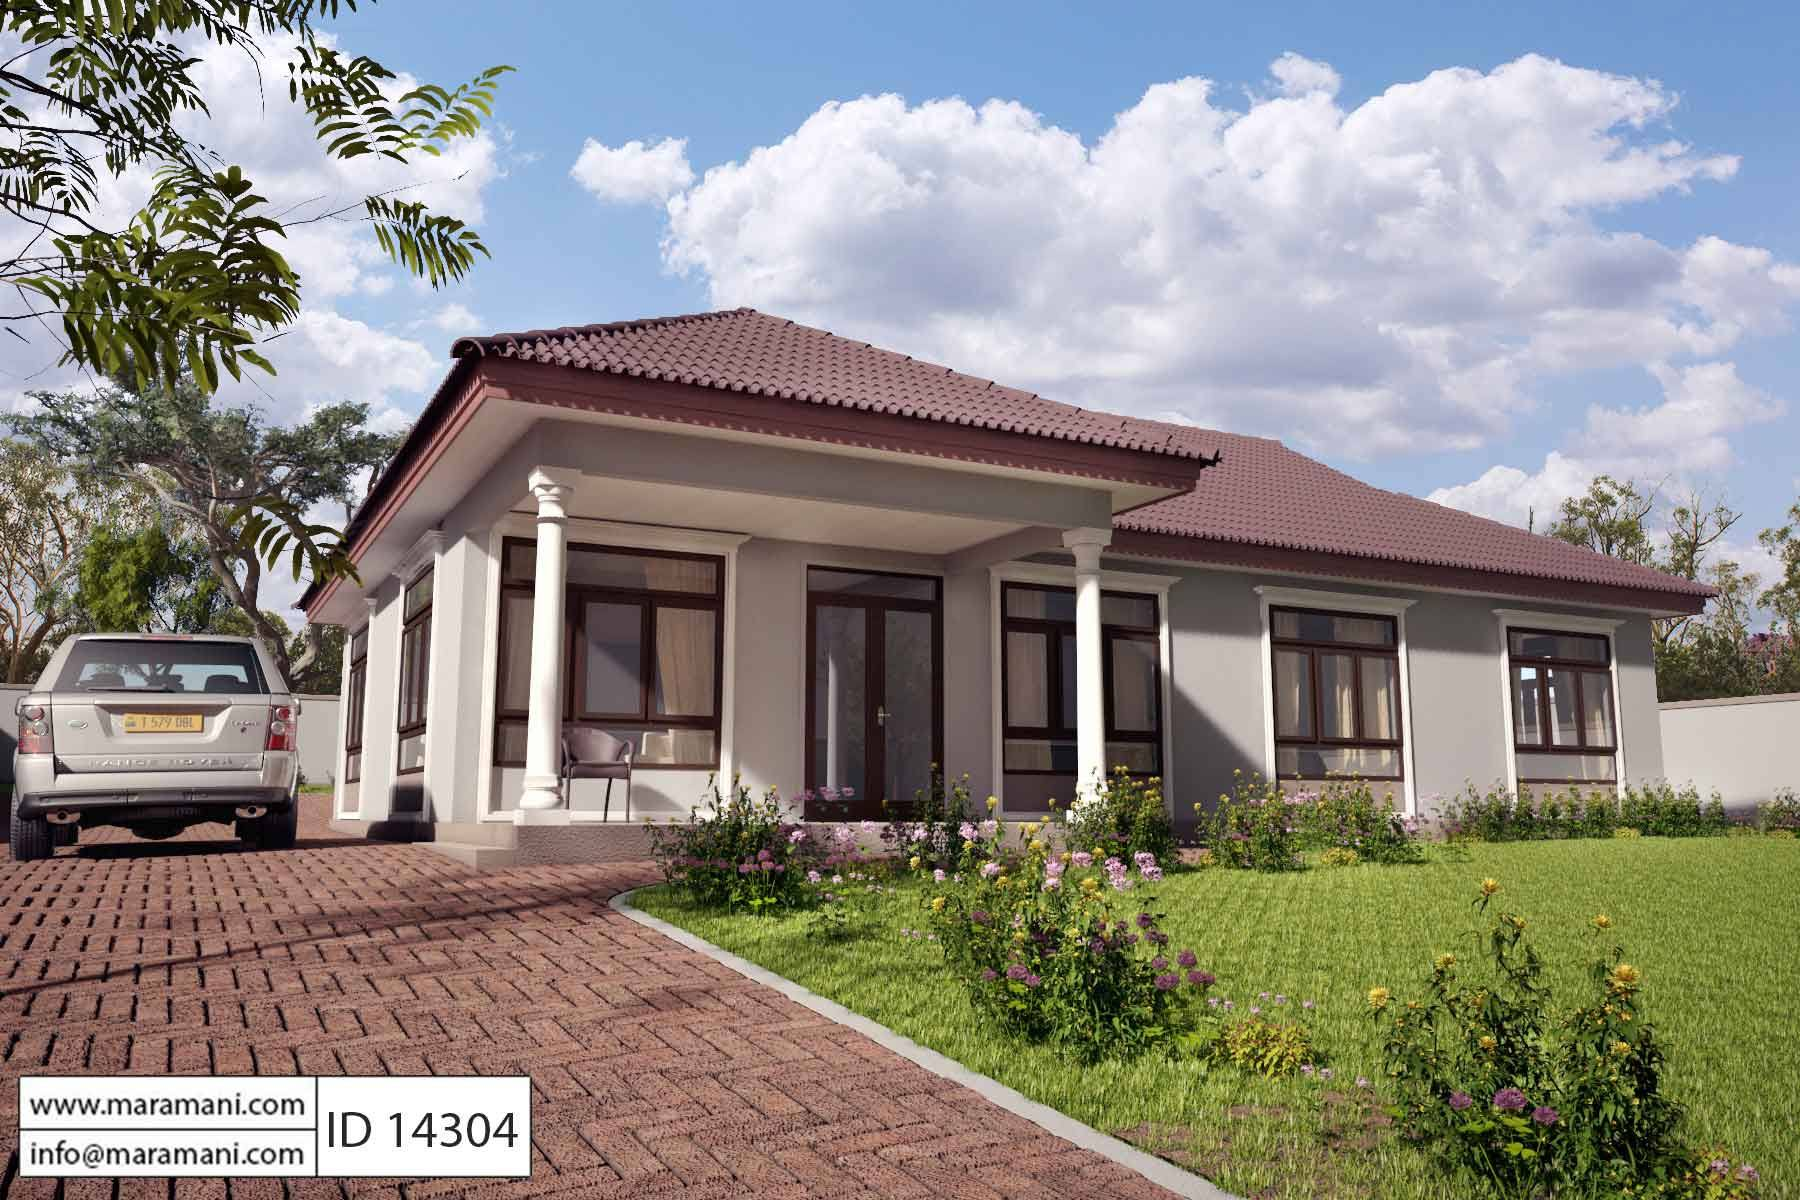 4 bedroom single story house plan